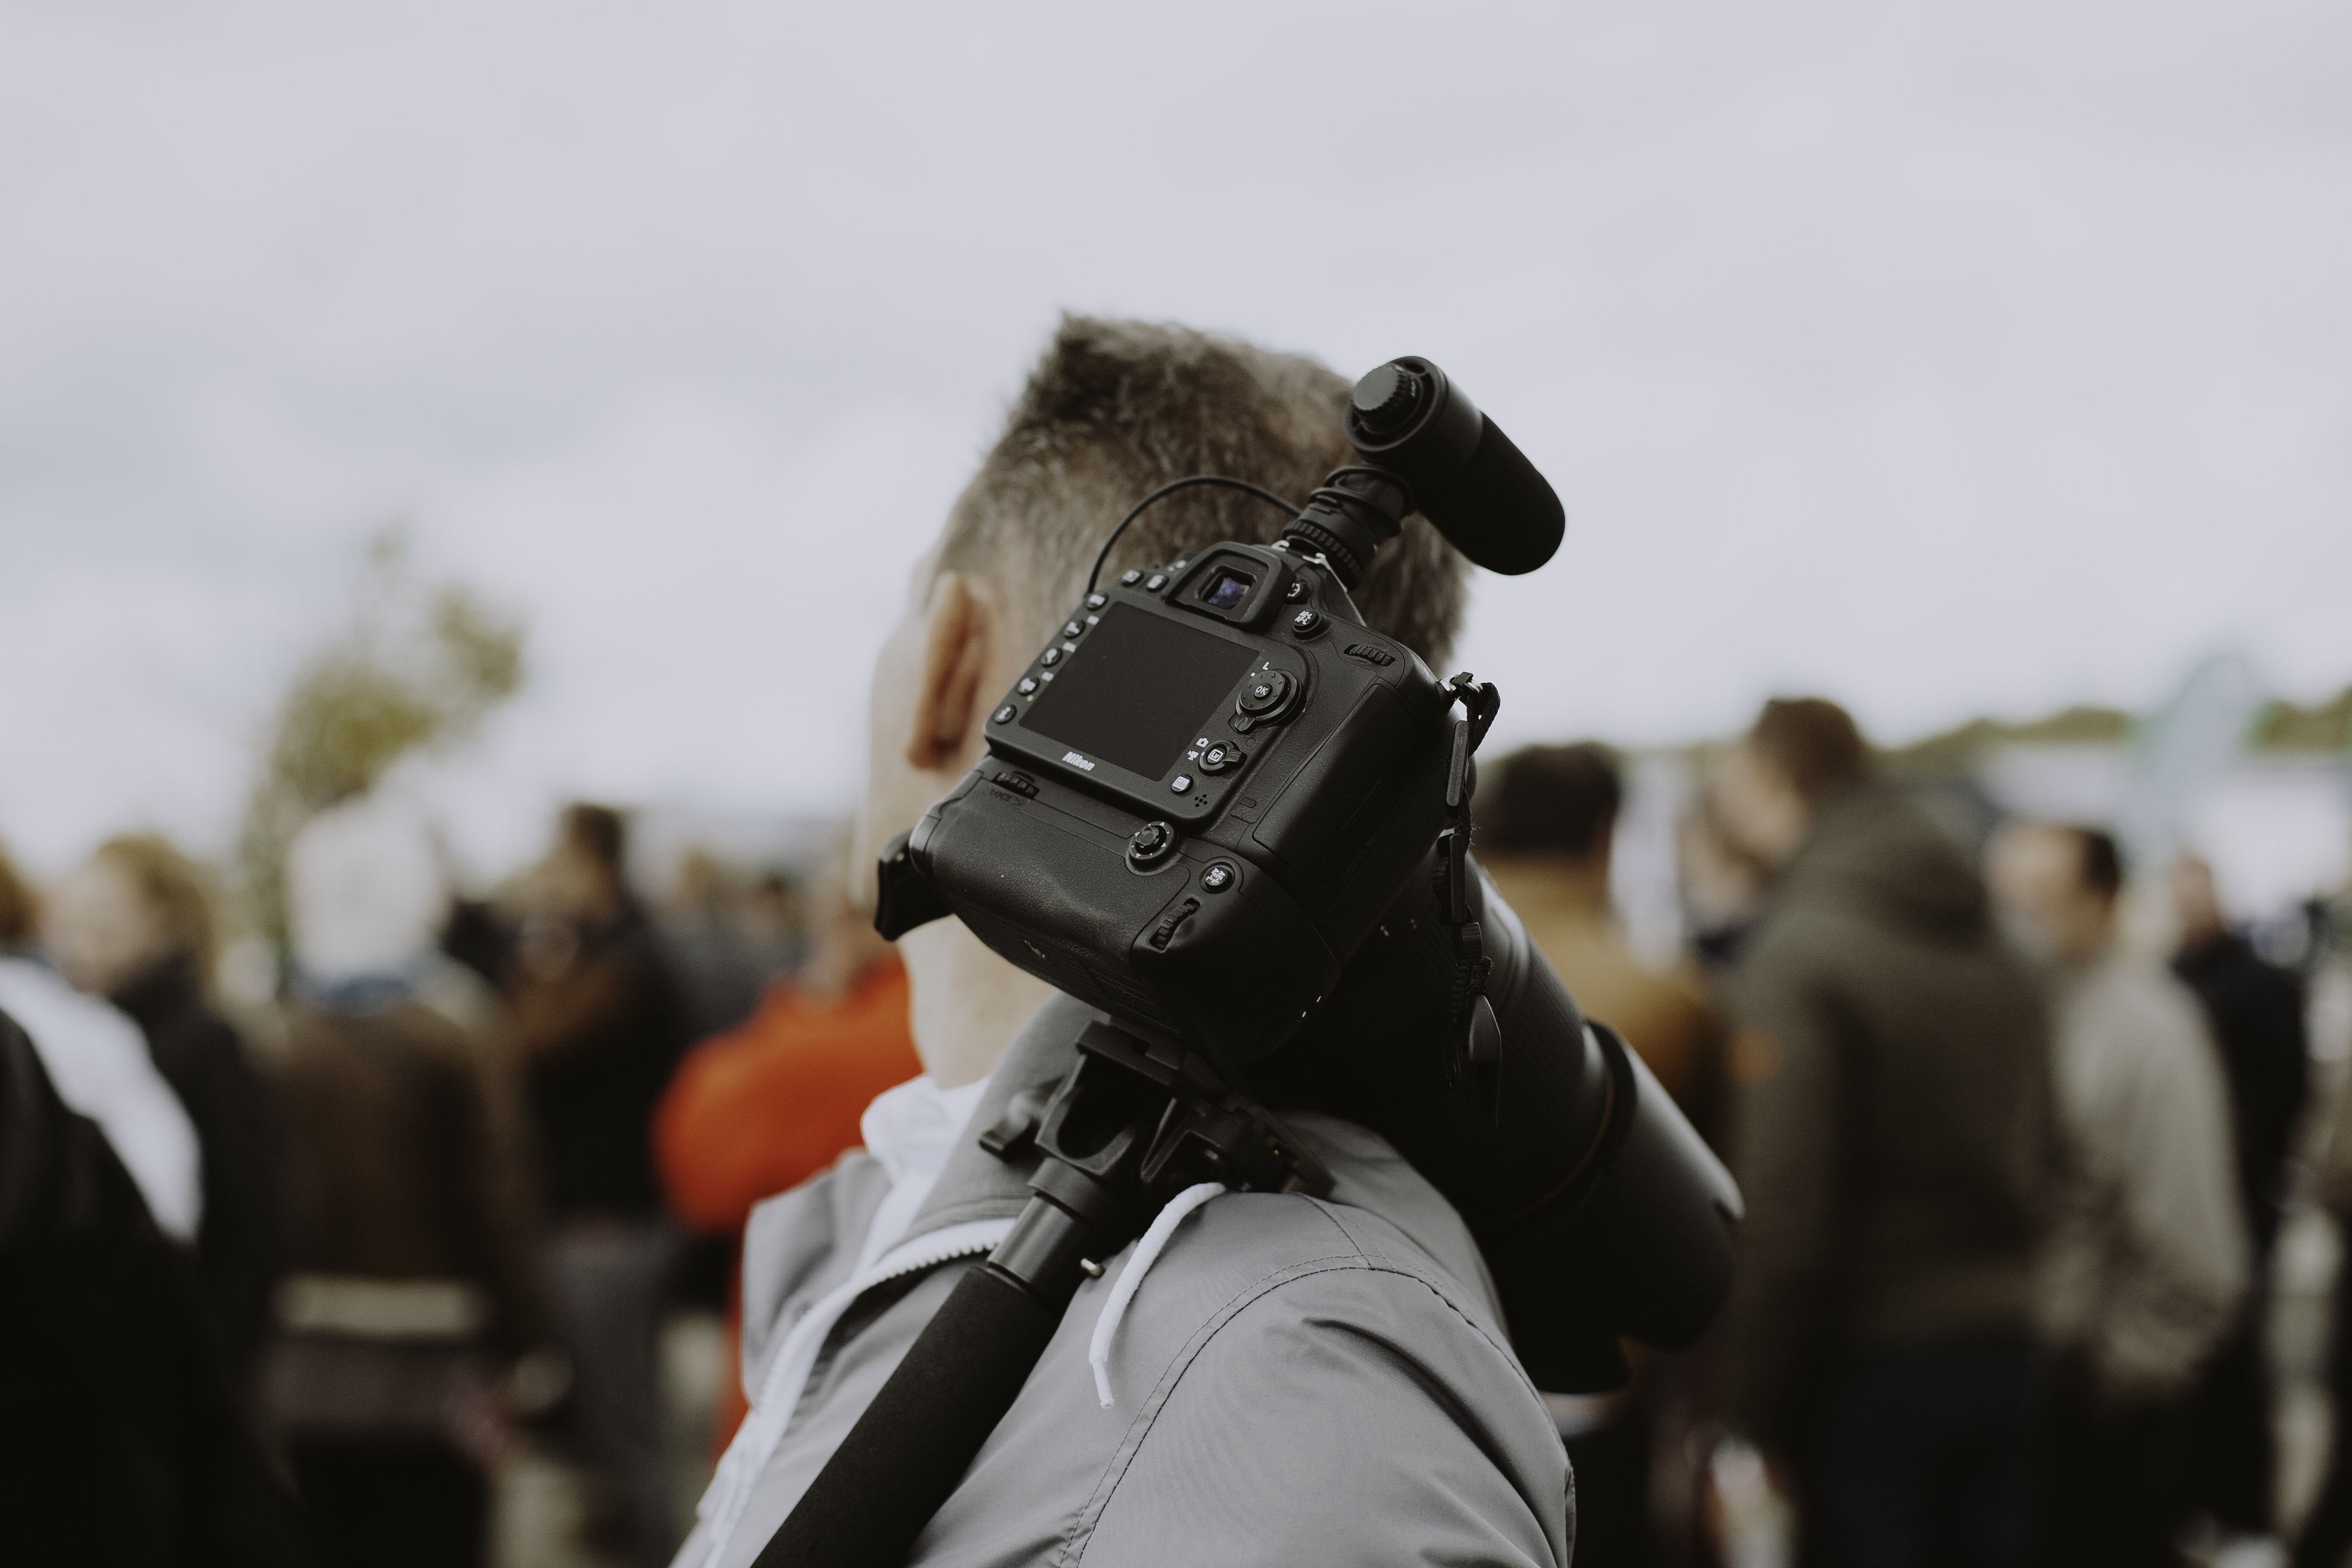 man with black DSLR camera on his shoulder